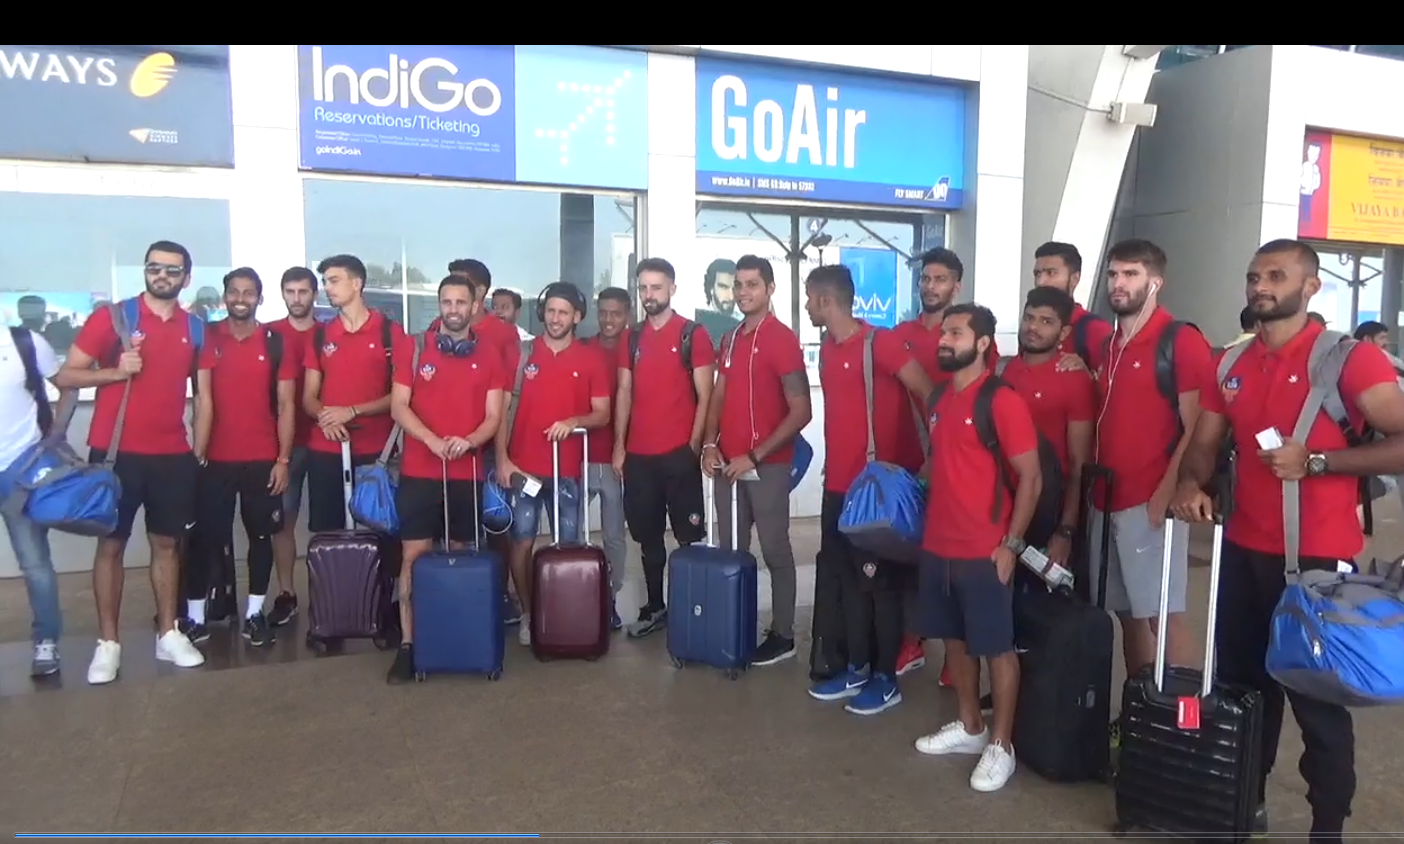 FC Goa travels to Chennai for 1st away match on Sunday